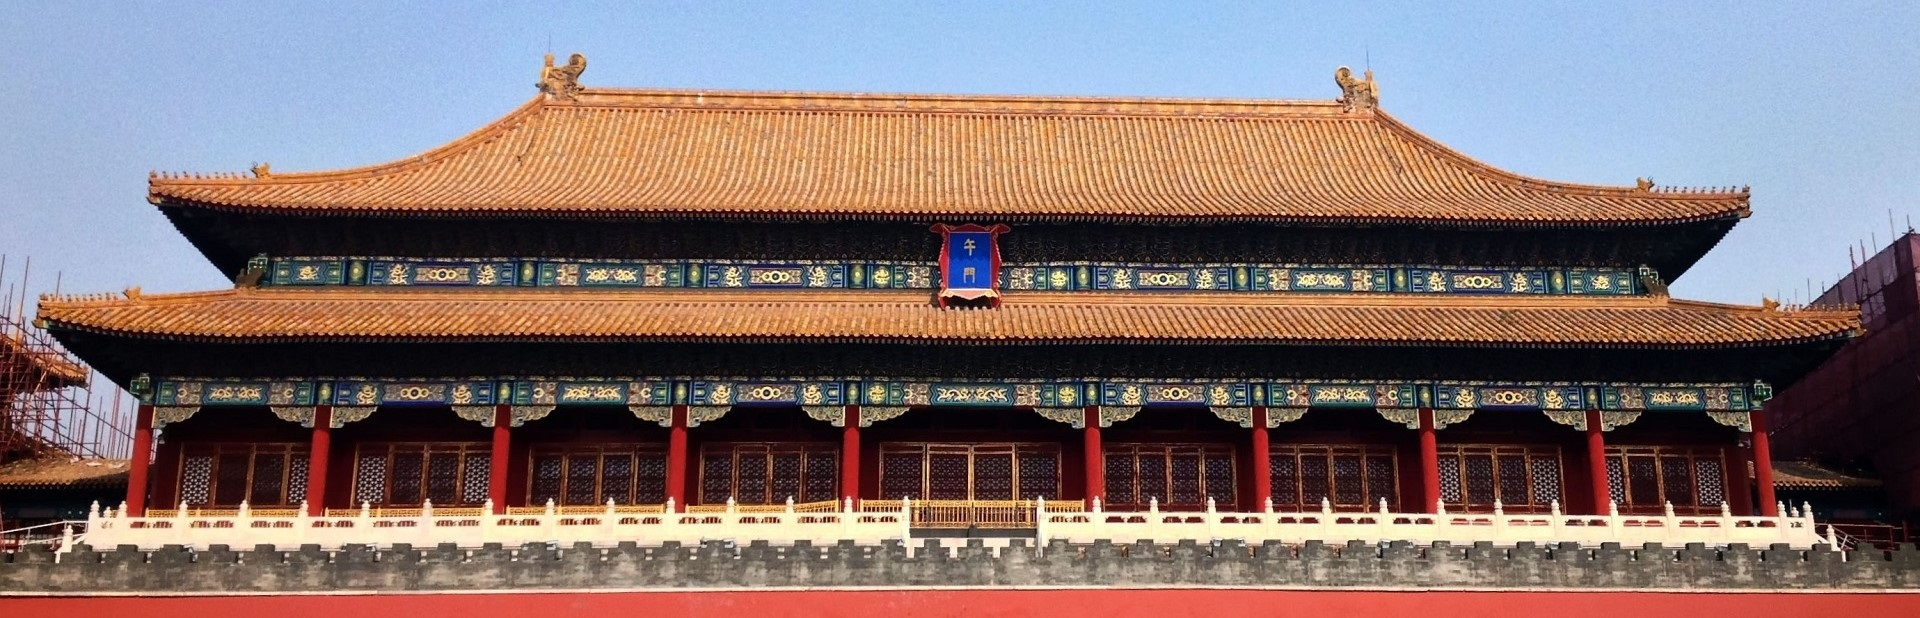 Gfp-beijing-entrance-into-the-forbidden-city (3)